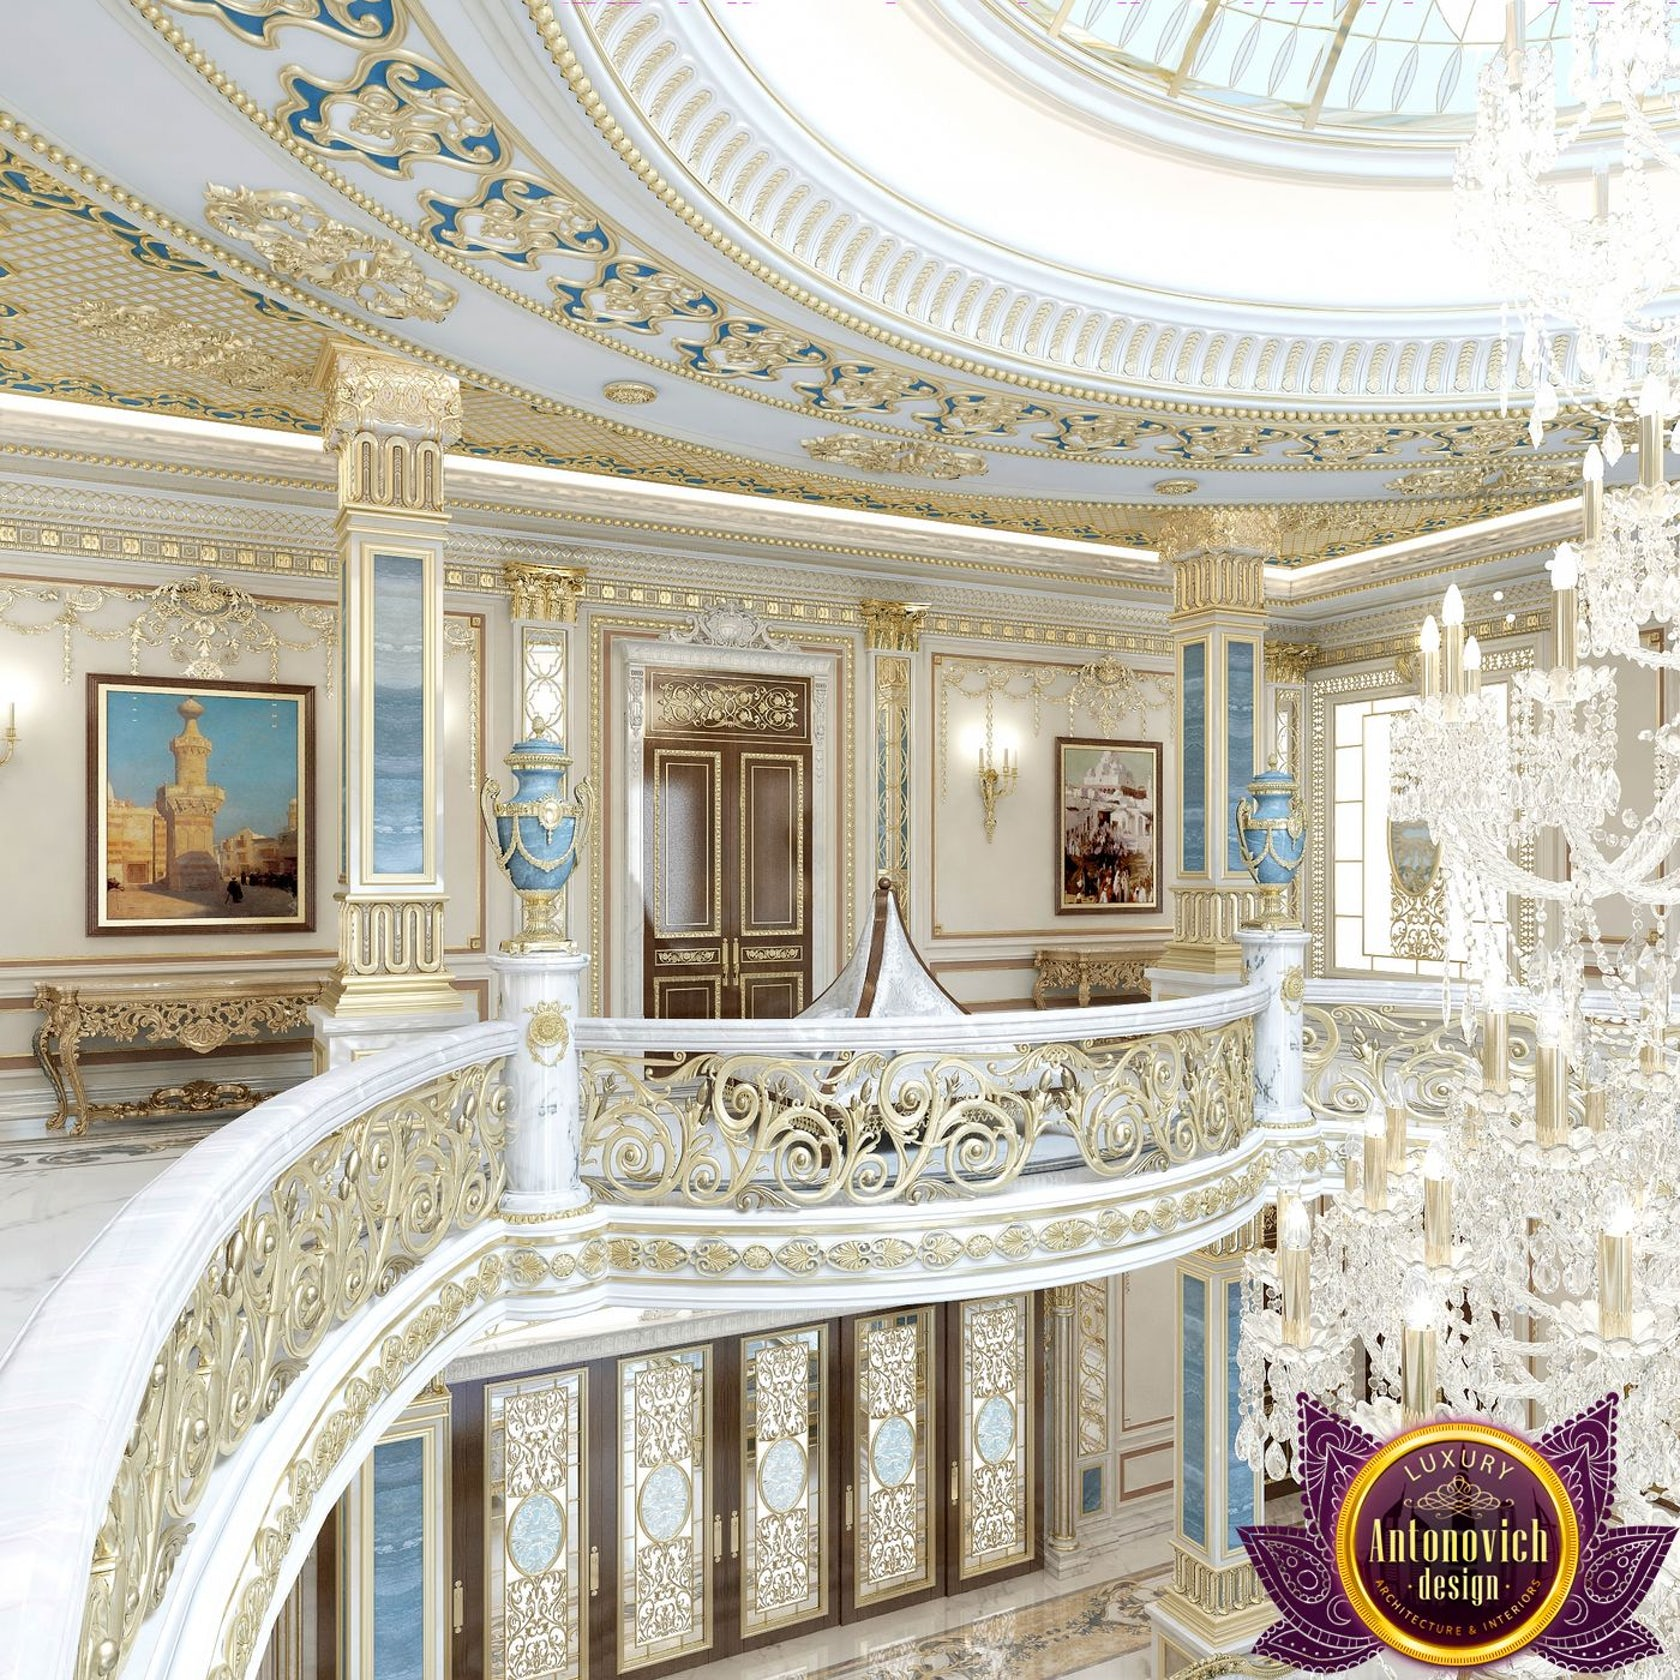 Katrina Antonovich Luxury Interior Design: The Best Interior Design Ideas By Katrina Antonovich